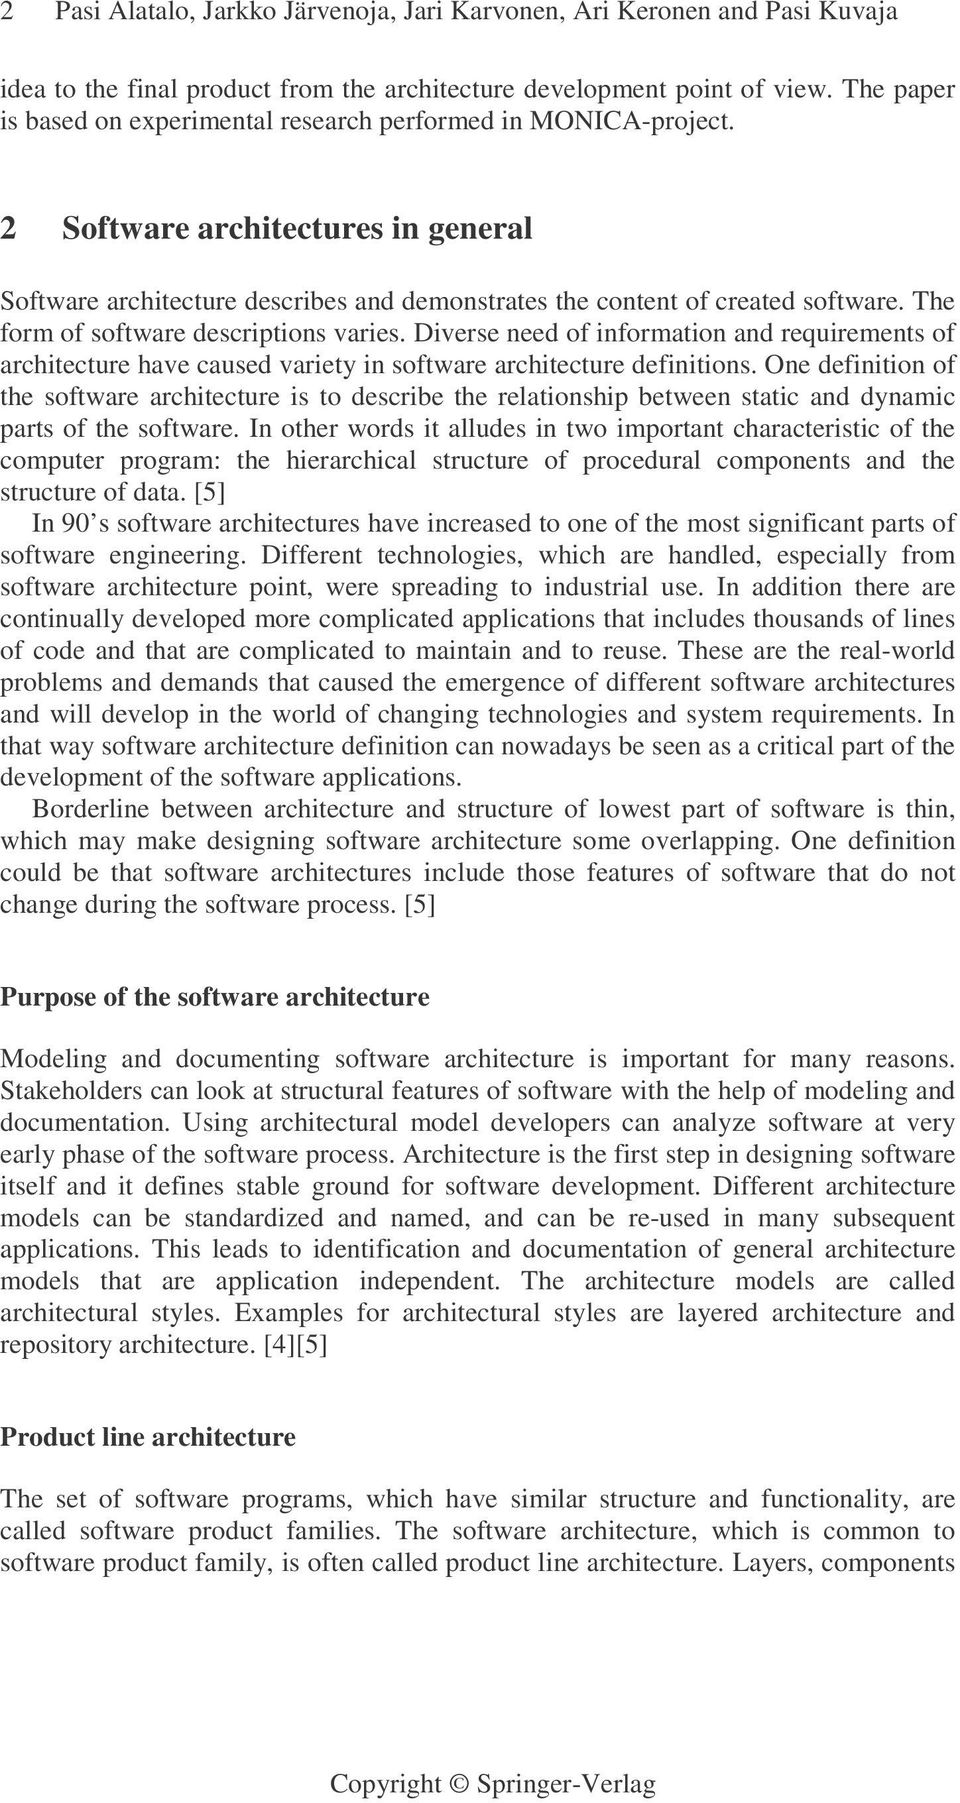 The form of software descriptions varies. Diverse need of information and requirements of architecture have caused variety in software architecture definitions.